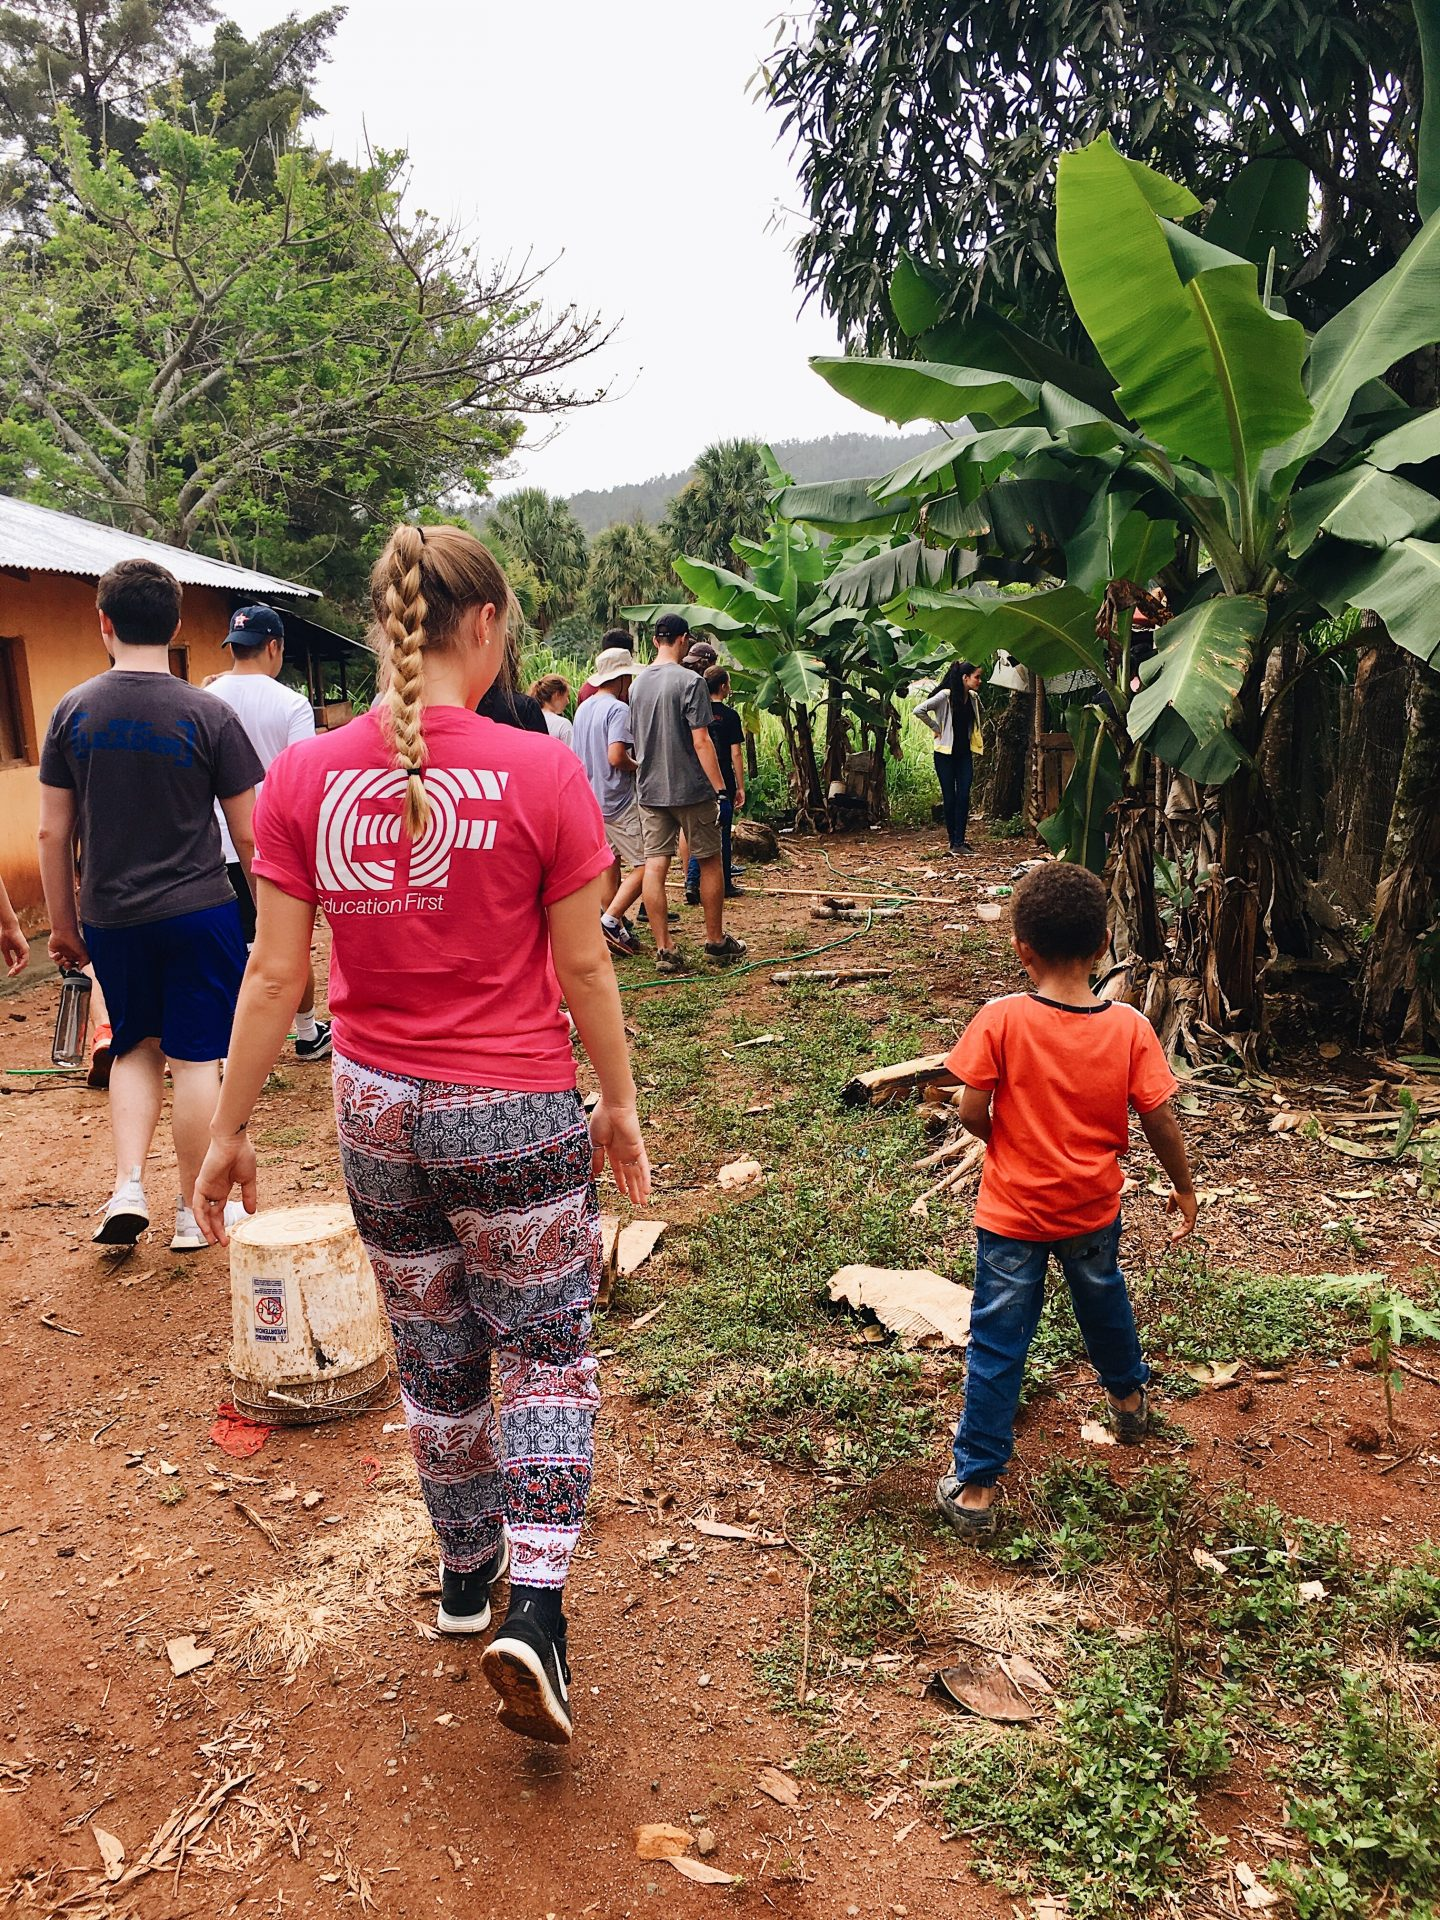 Walking through a volunteer site in the DR with EF students!